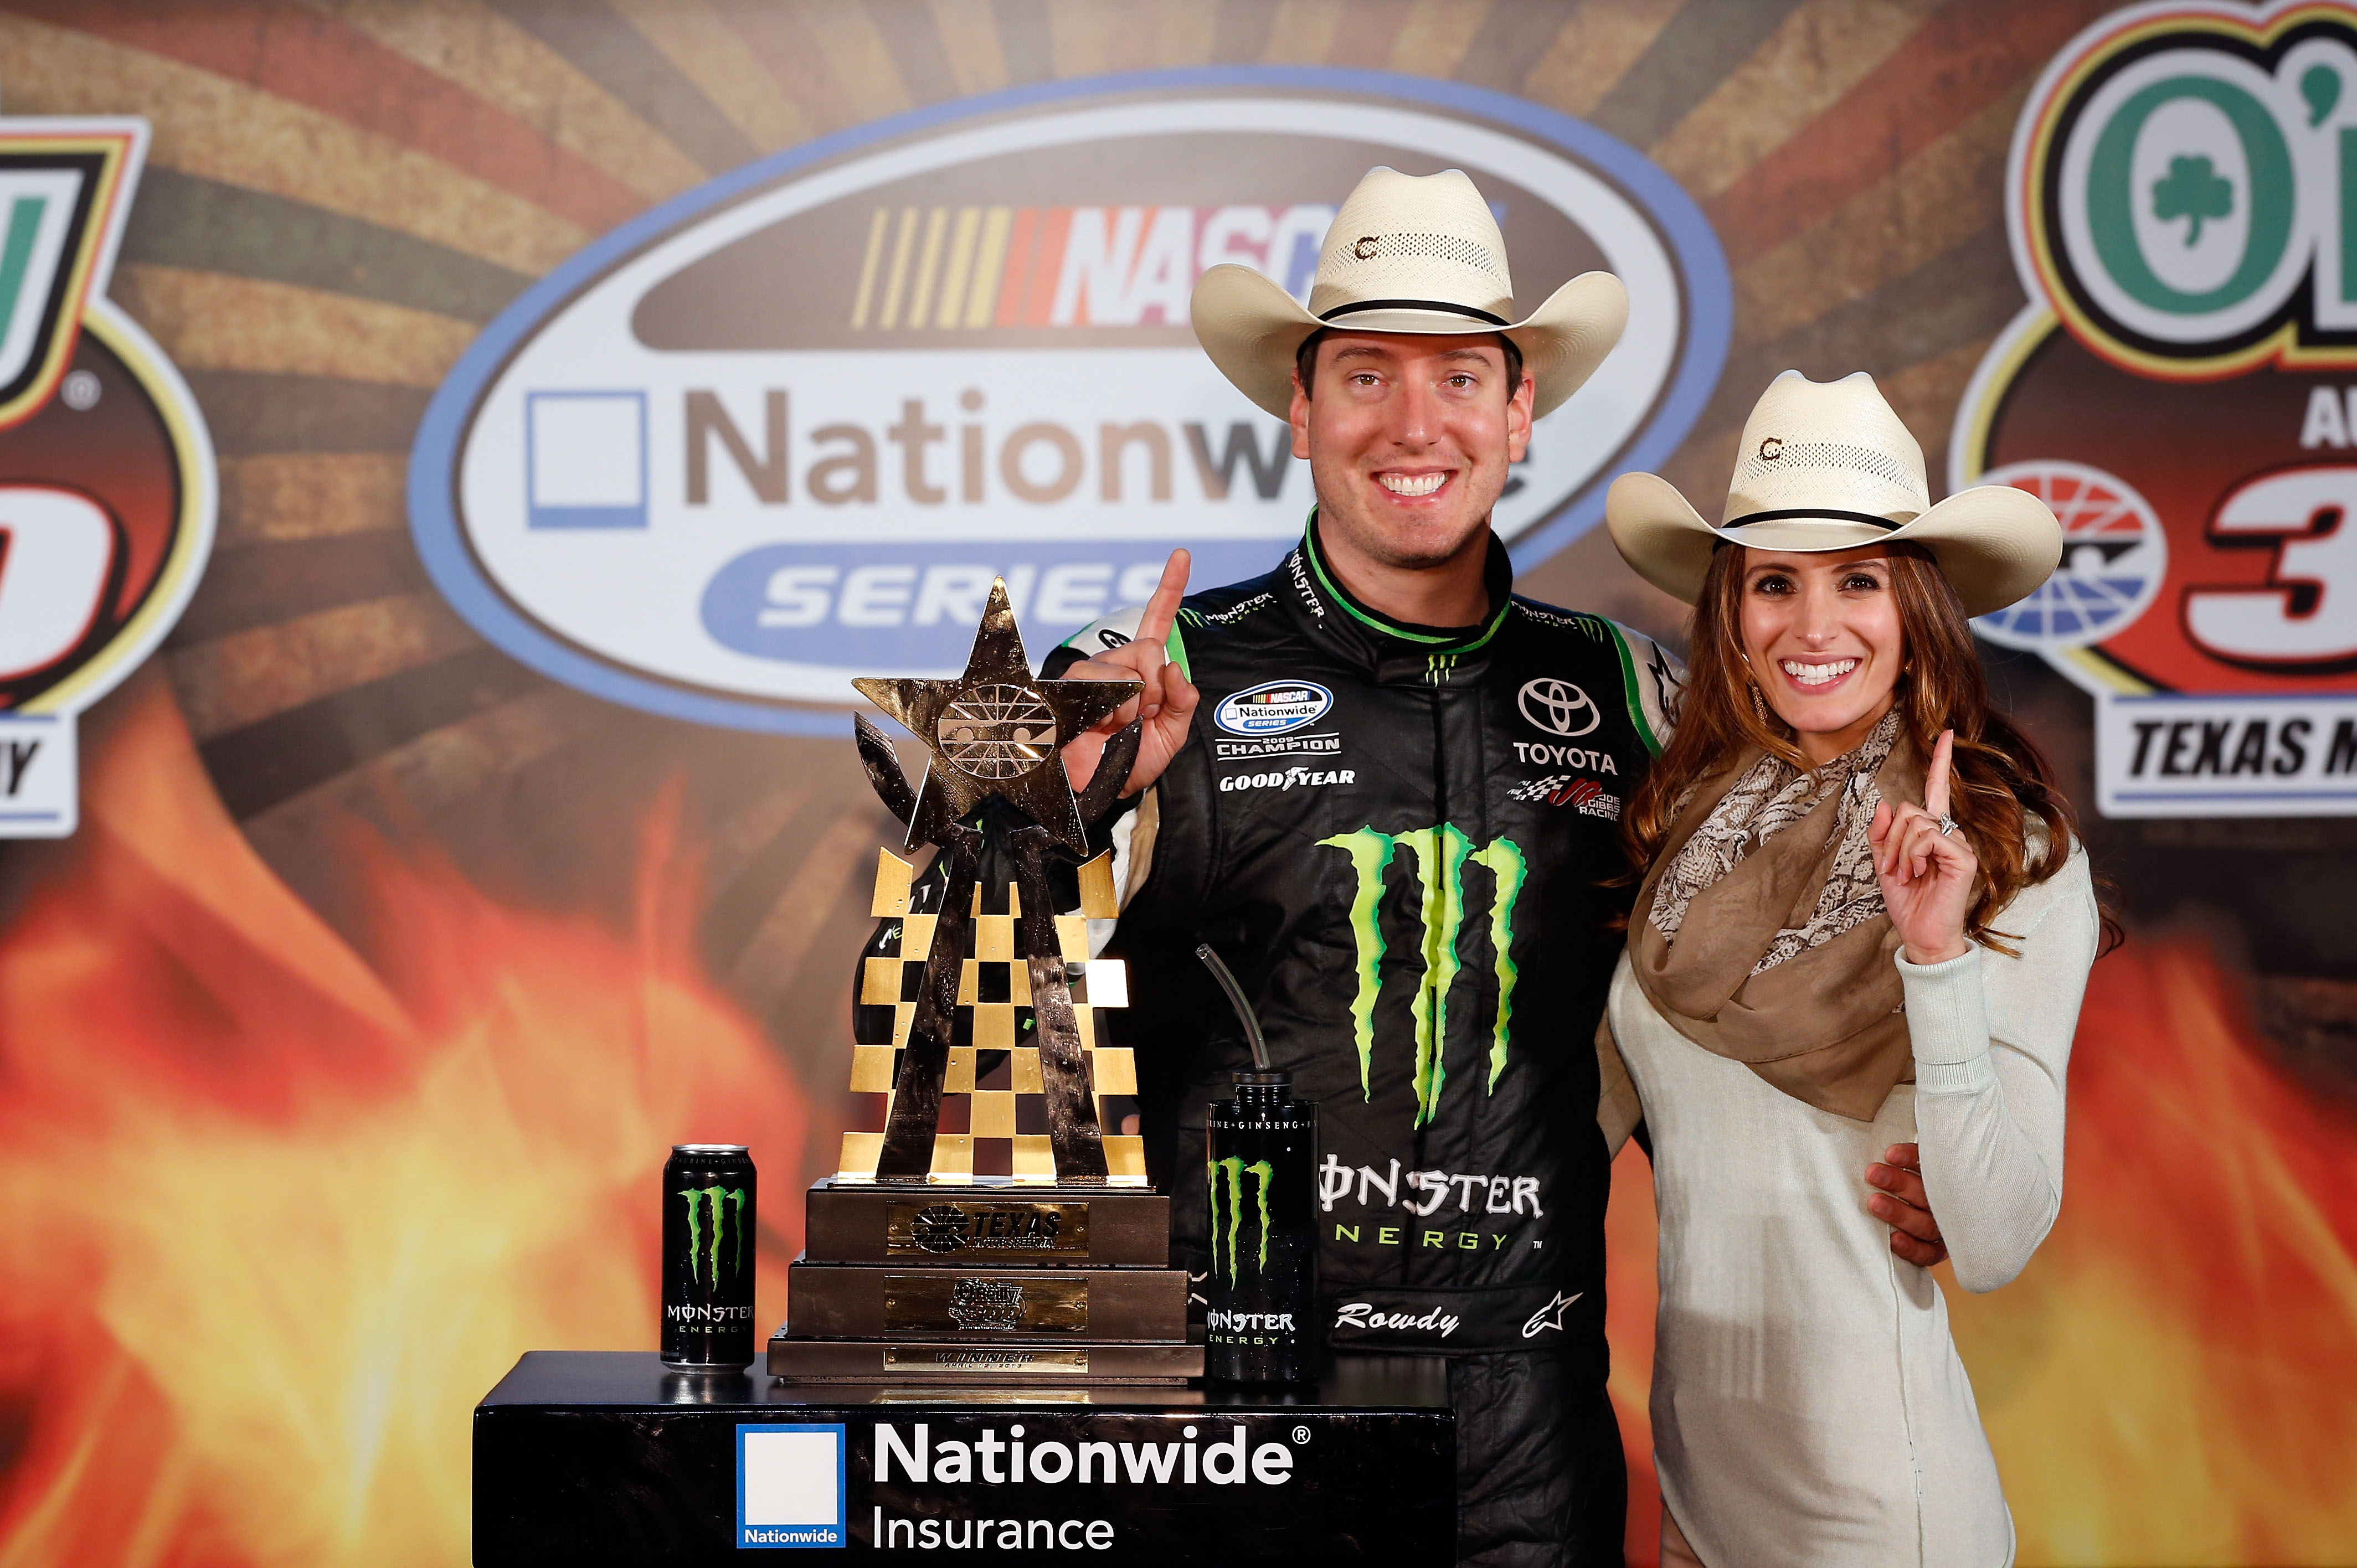 (Photo by Chris Graythen/Getty Images for Texas Motor Speedway)